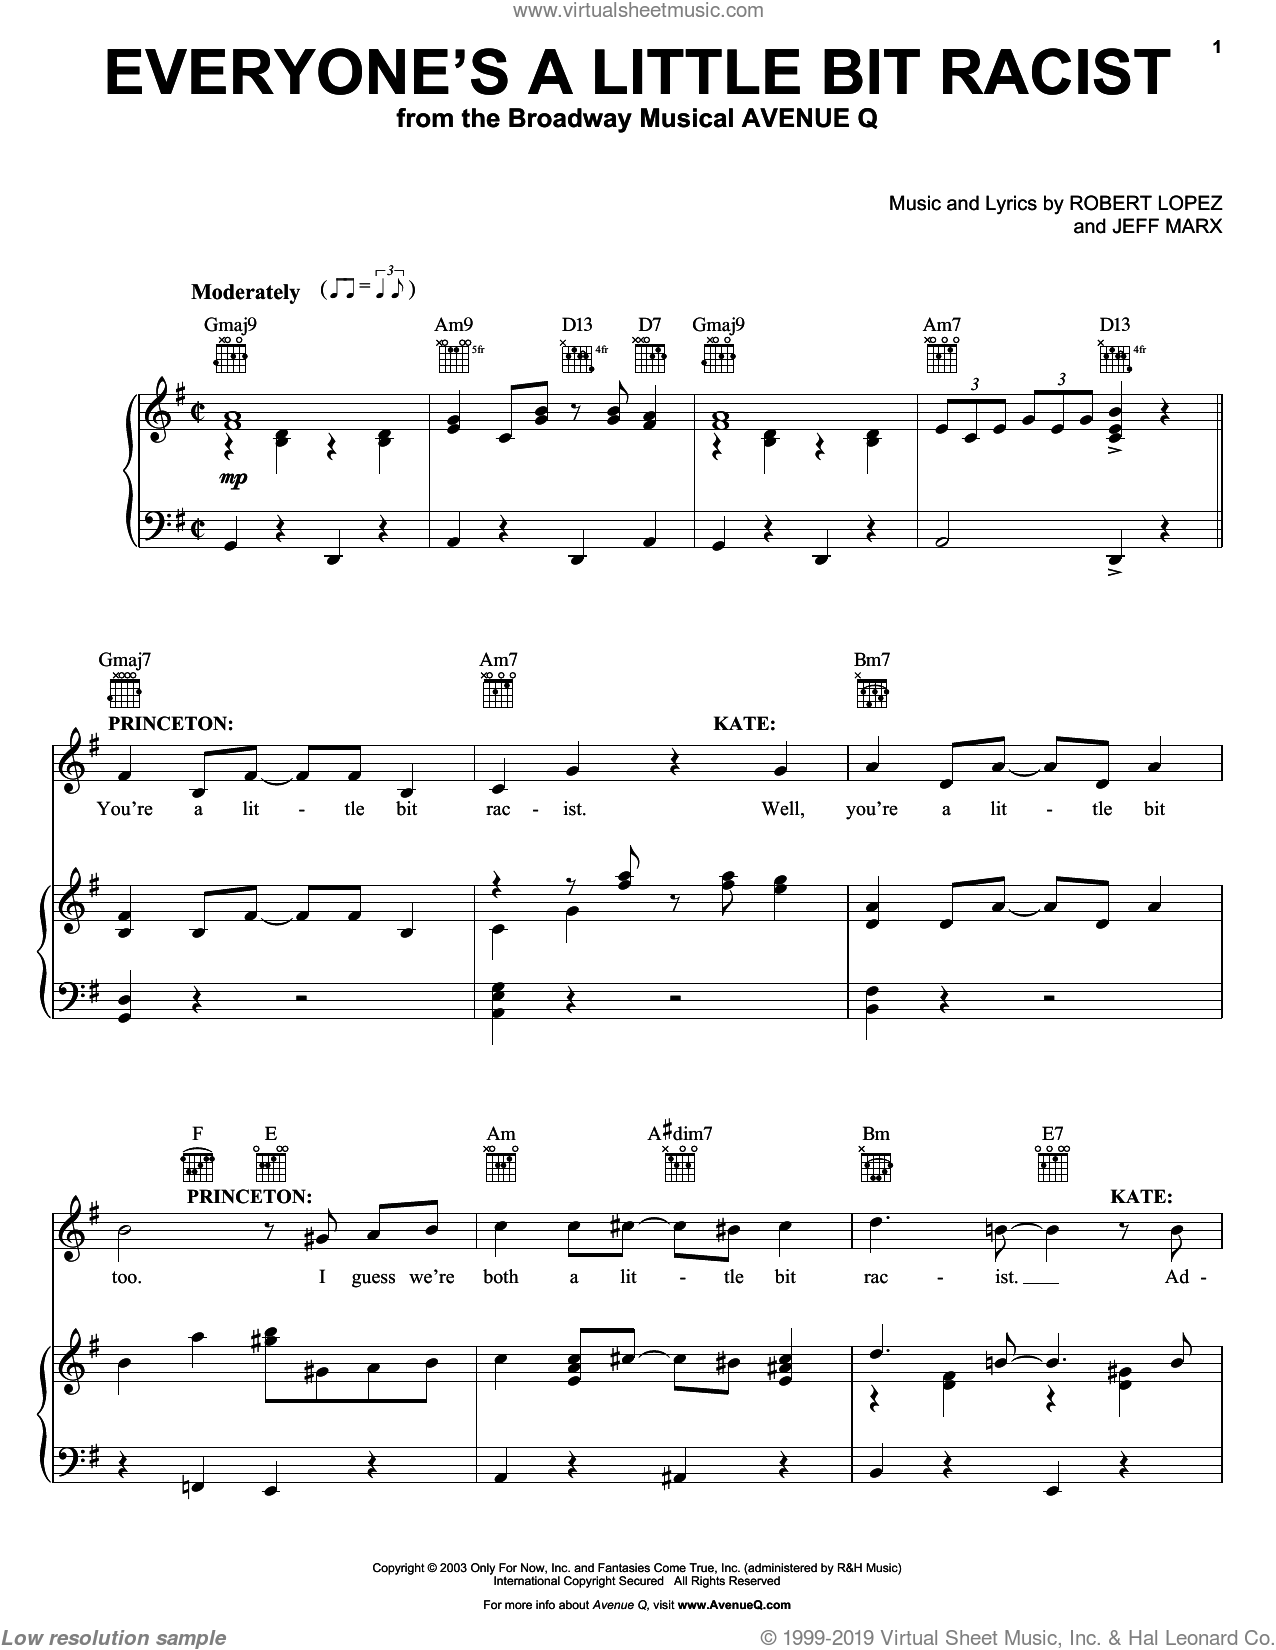 Everyone's A Little Bit Racist sheet music for voice, piano or guitar by Robert Lopez, Avenue Q and Jeff Marx. Score Image Preview.